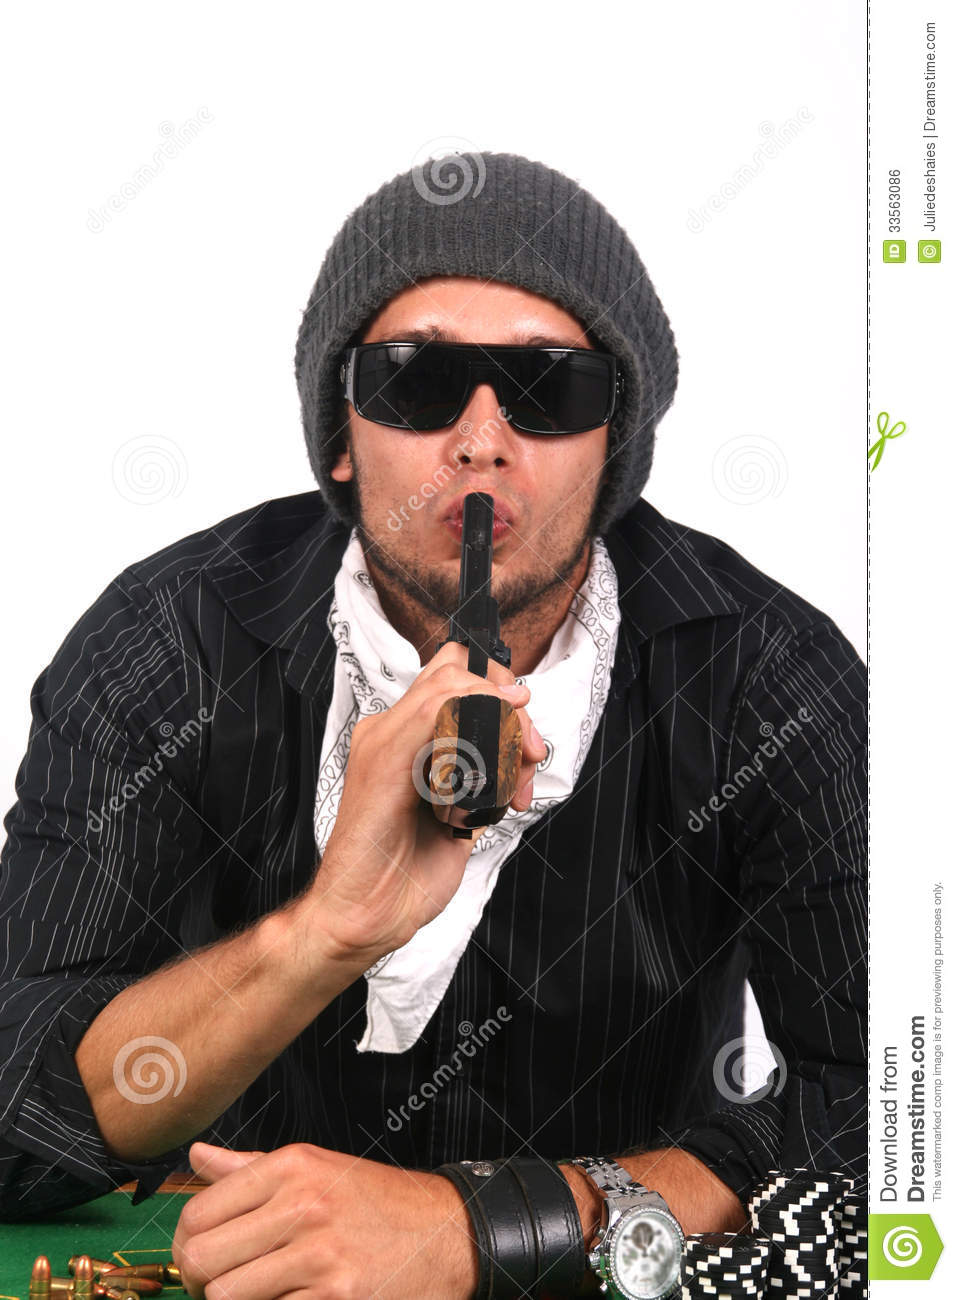 Man With Gun In Mouth 51